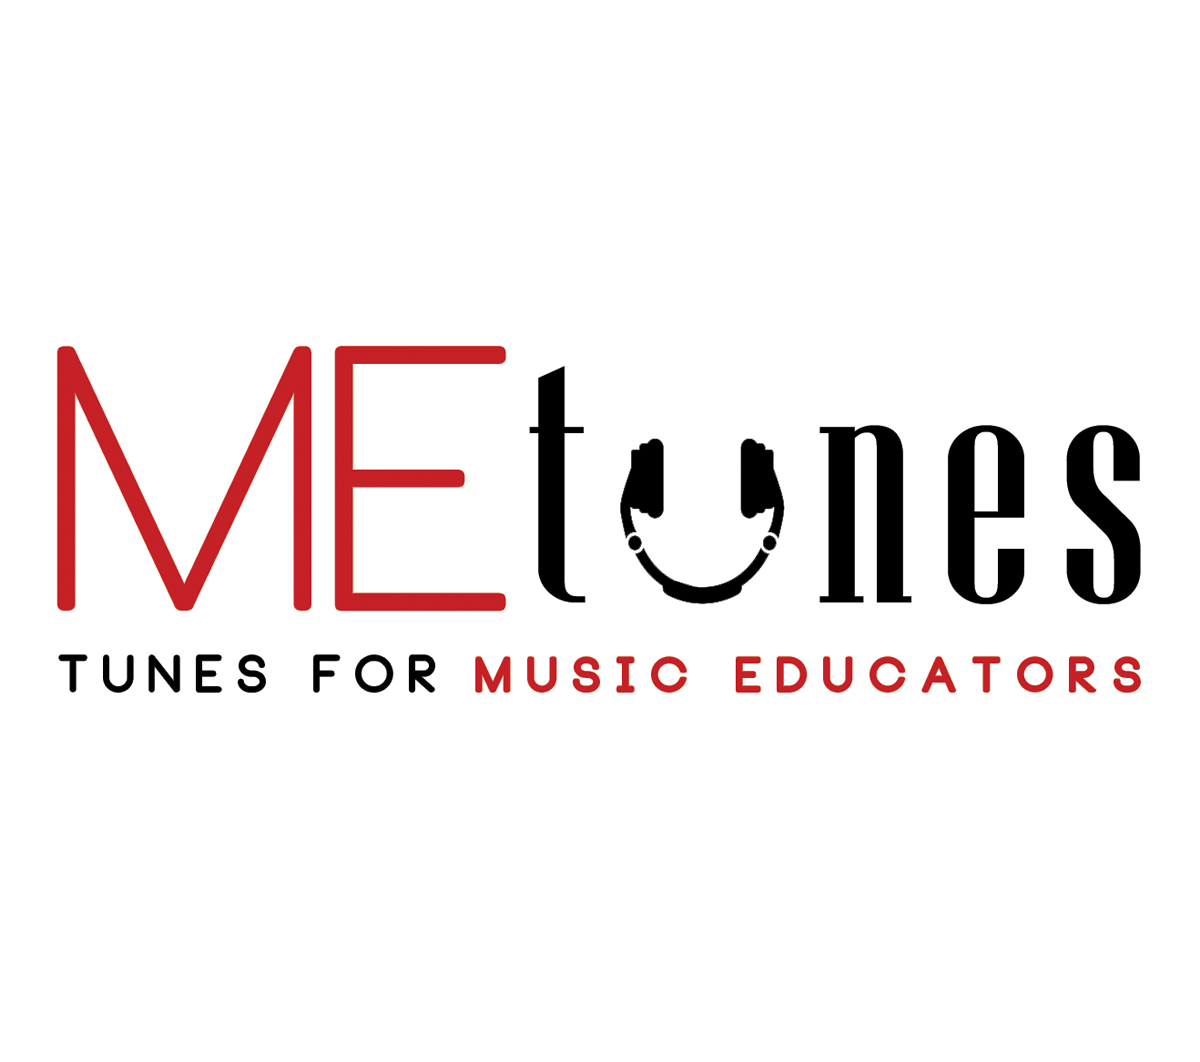 metunes-new-logo-for-homepage-4.jpg